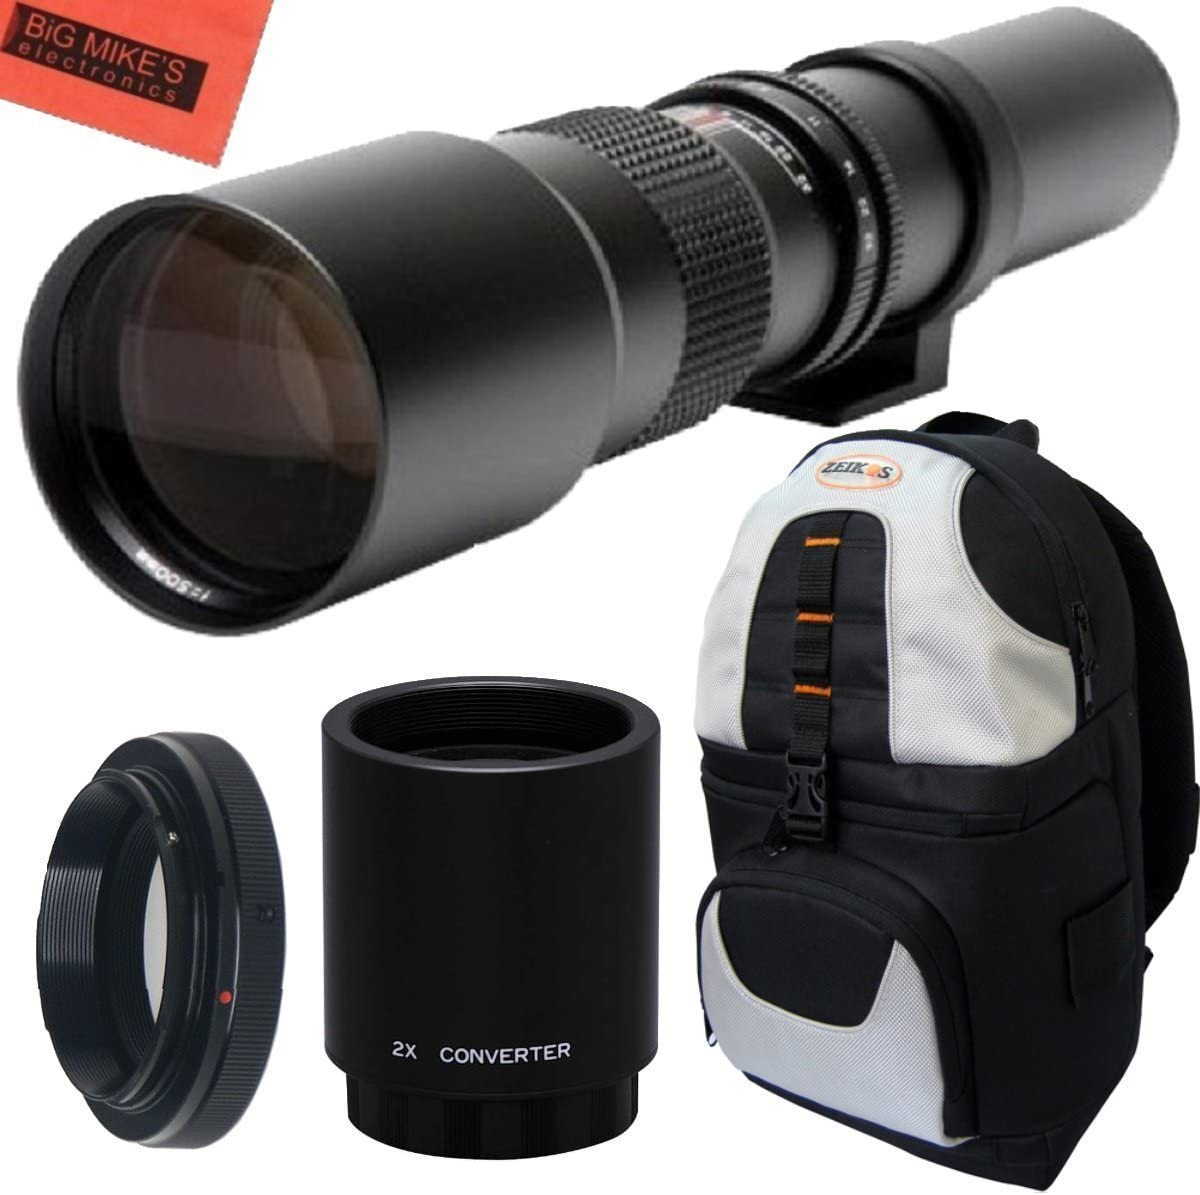 NEX-7 NEX-5T NEX-6 a7 a5000 a7s Deluxe SLR Backpack for Sony Alpha E-Mount a7r a6000 NEX-5N NEX-5R and NEX-3N High-Power 500mm//1000mm f//8 Manual Telephoto Lens a5100 a3000